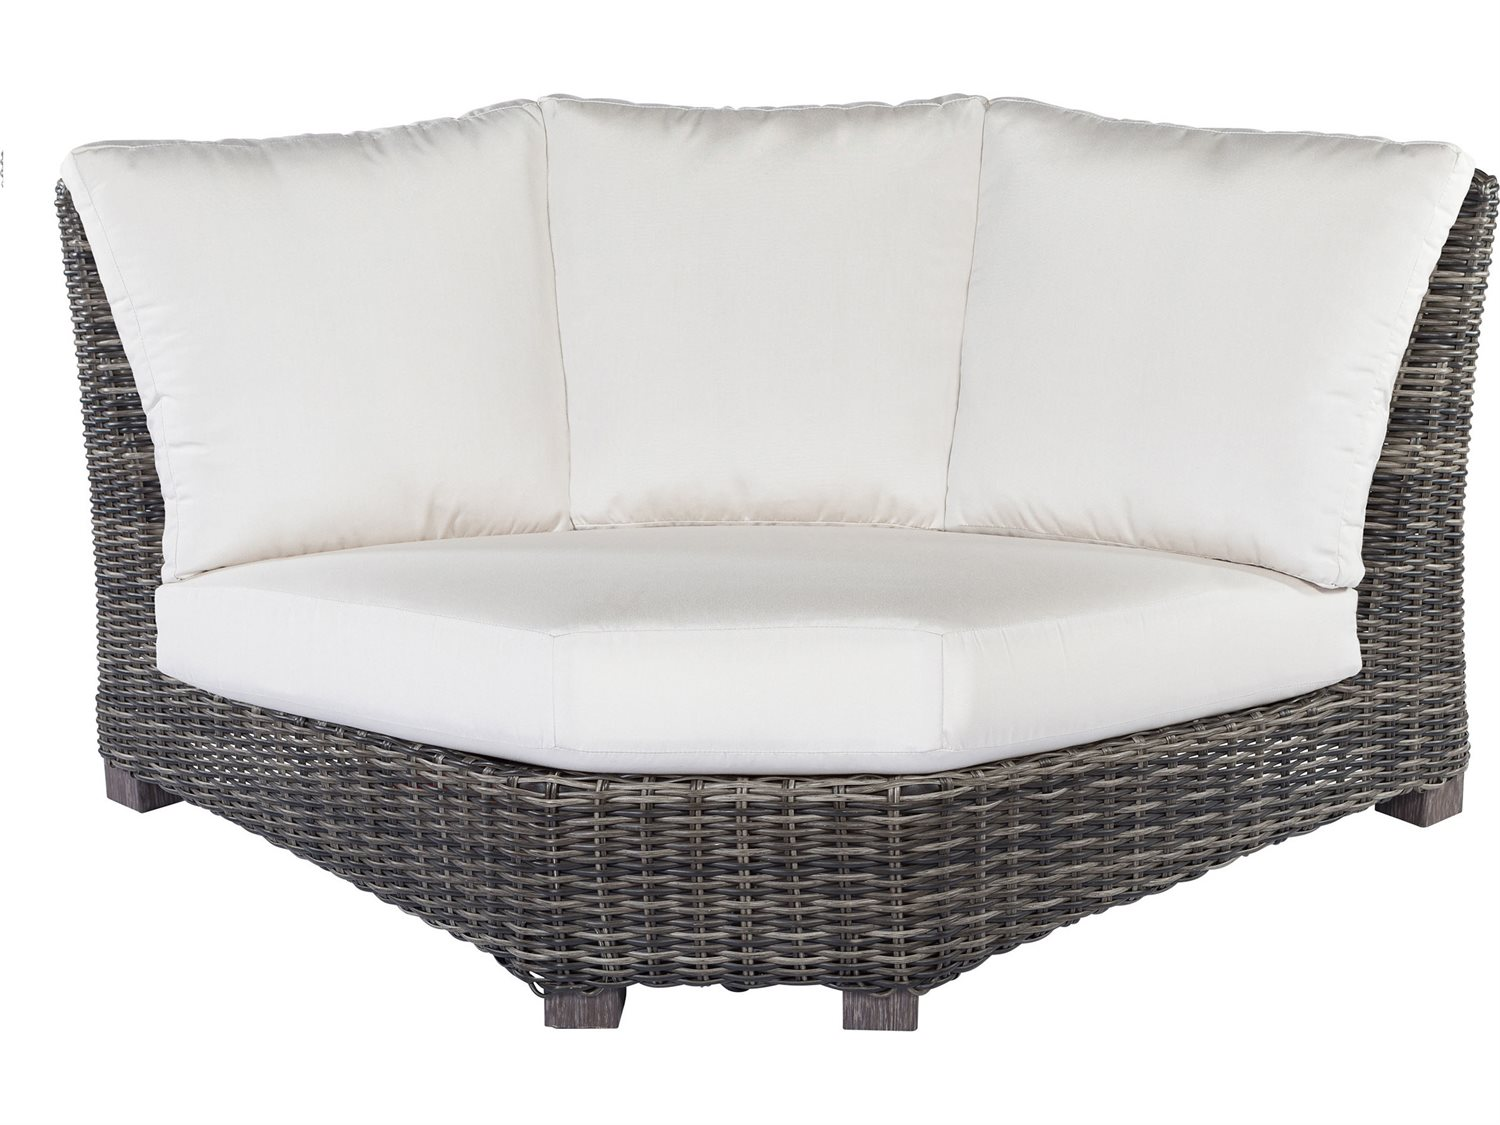 Rattan Corner Sofa Replacement Cushions Ebel Avallon 90º Curved Corner Loveseat Replacement Cushions